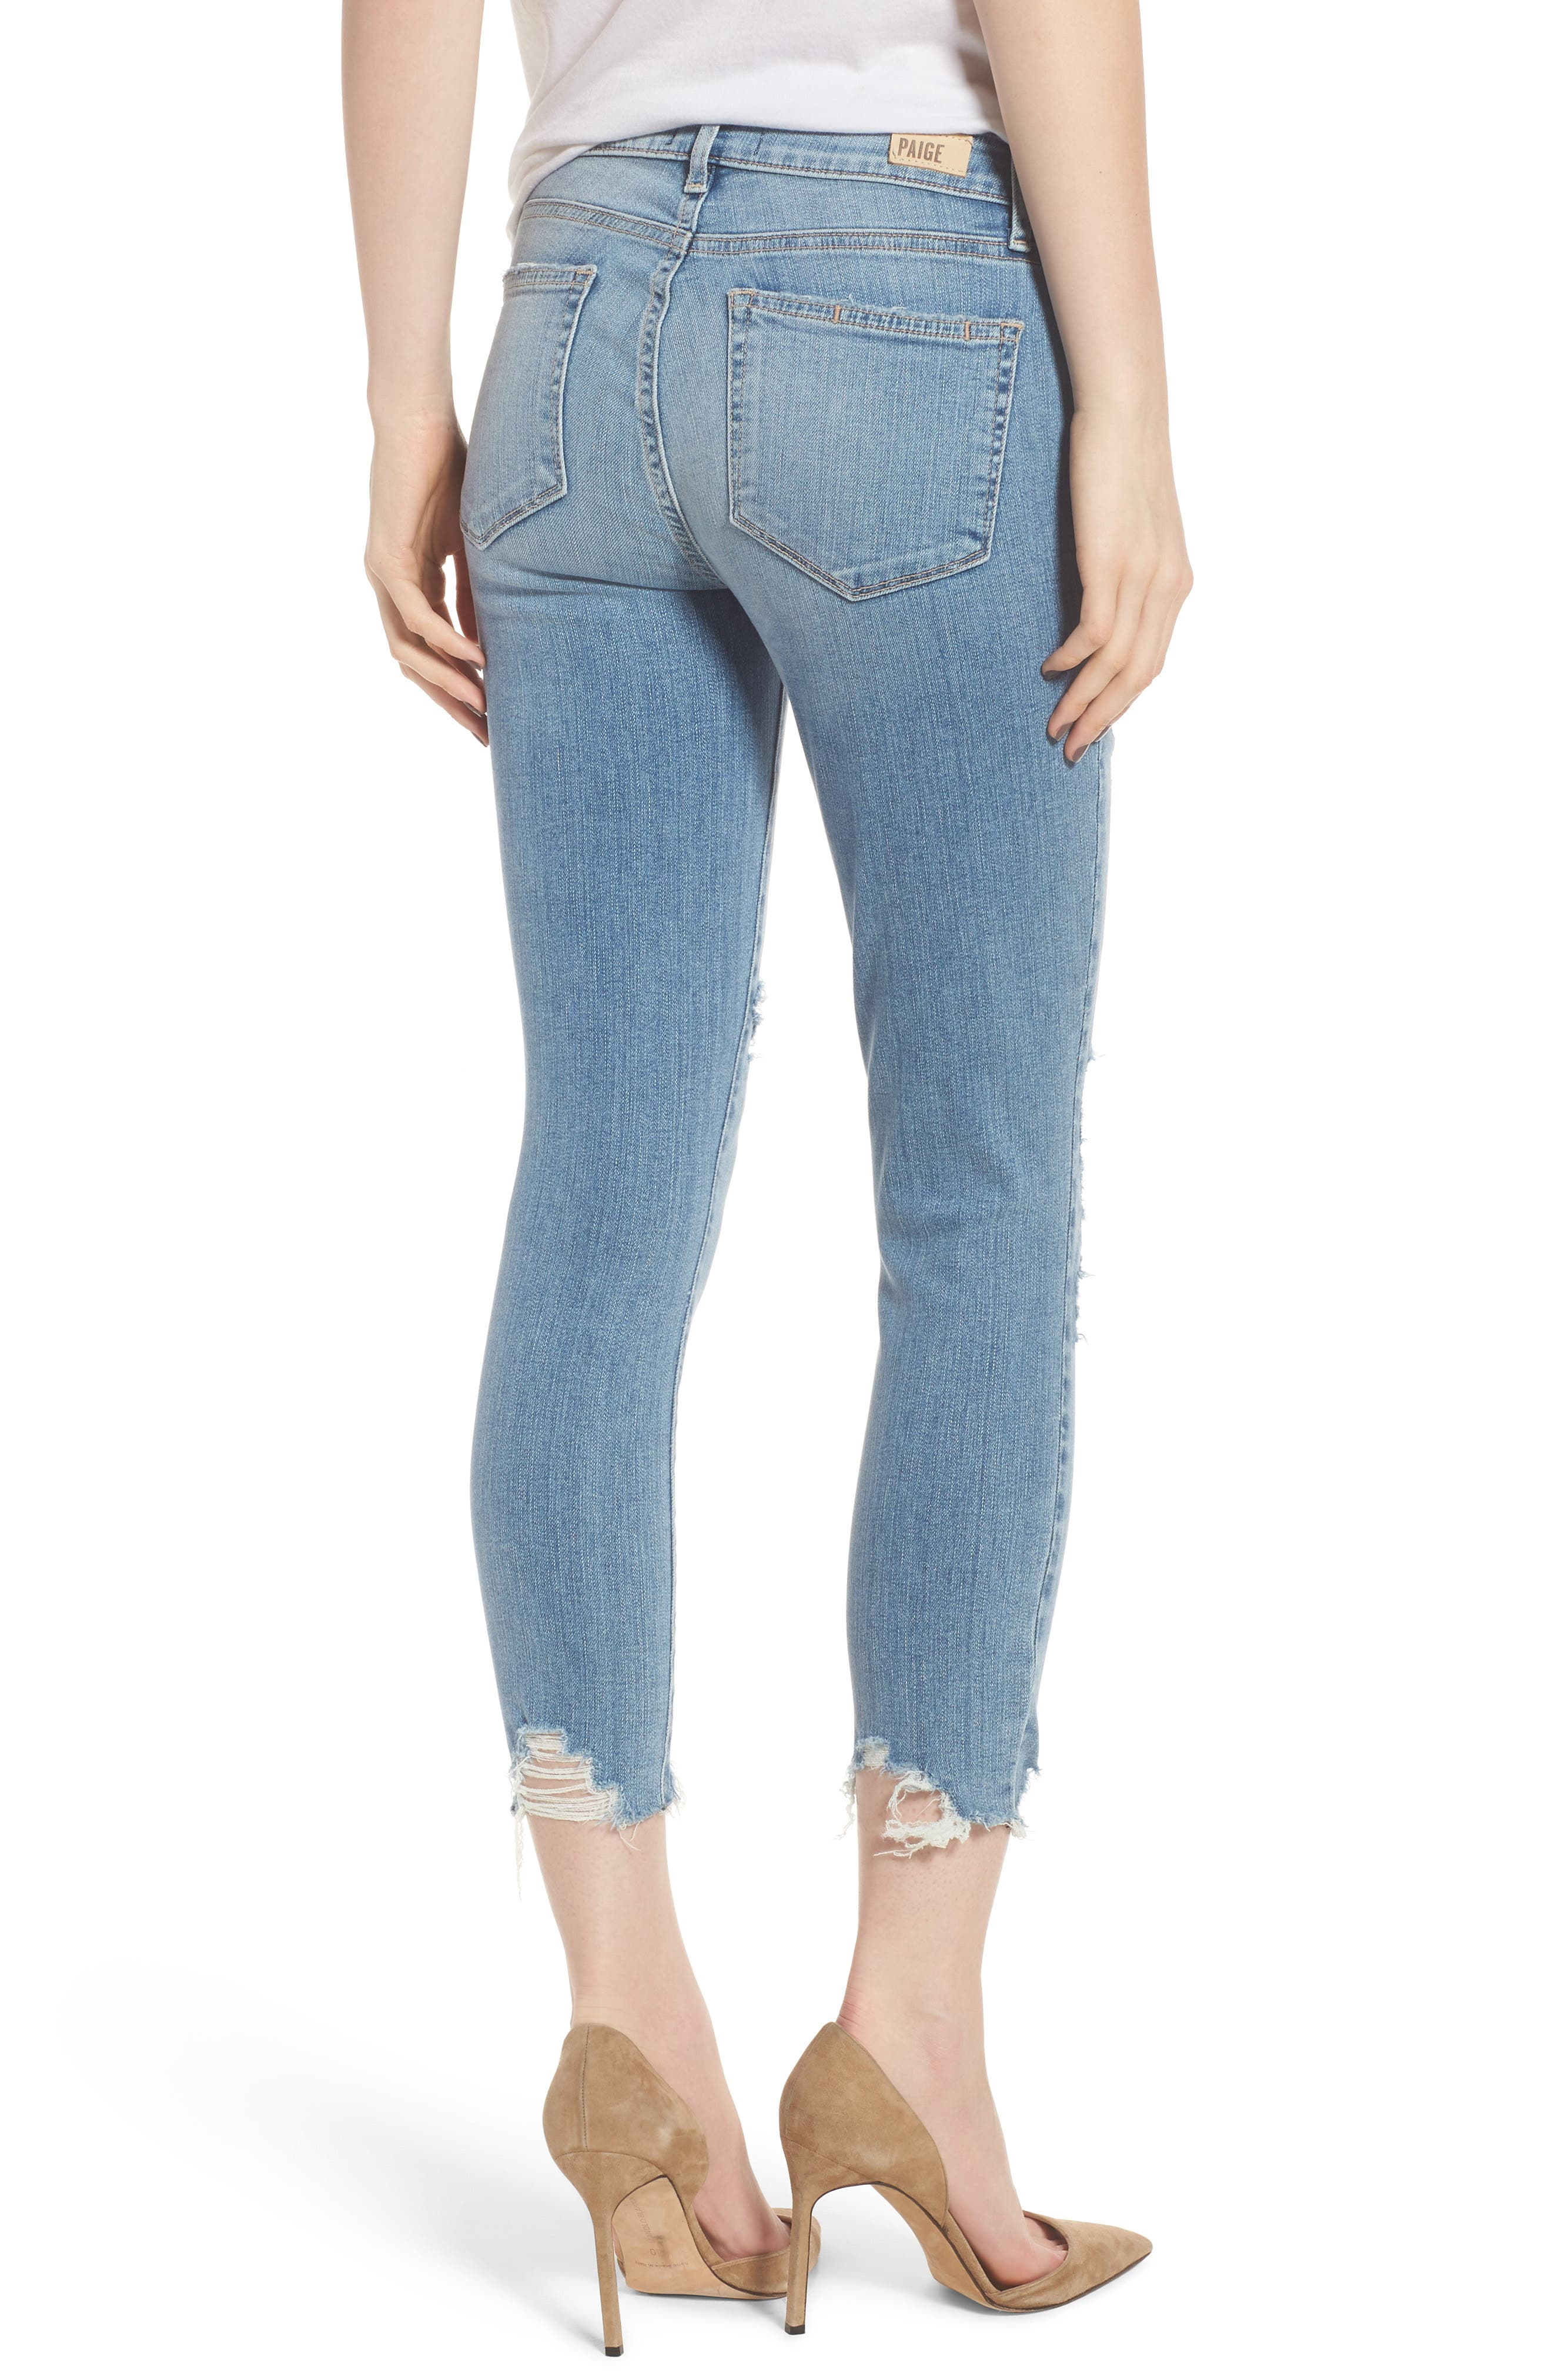 Verdugo Ripped Crop Ultra Skinny Jeans,                             Alternate thumbnail 2, color,                             Janis Destructed